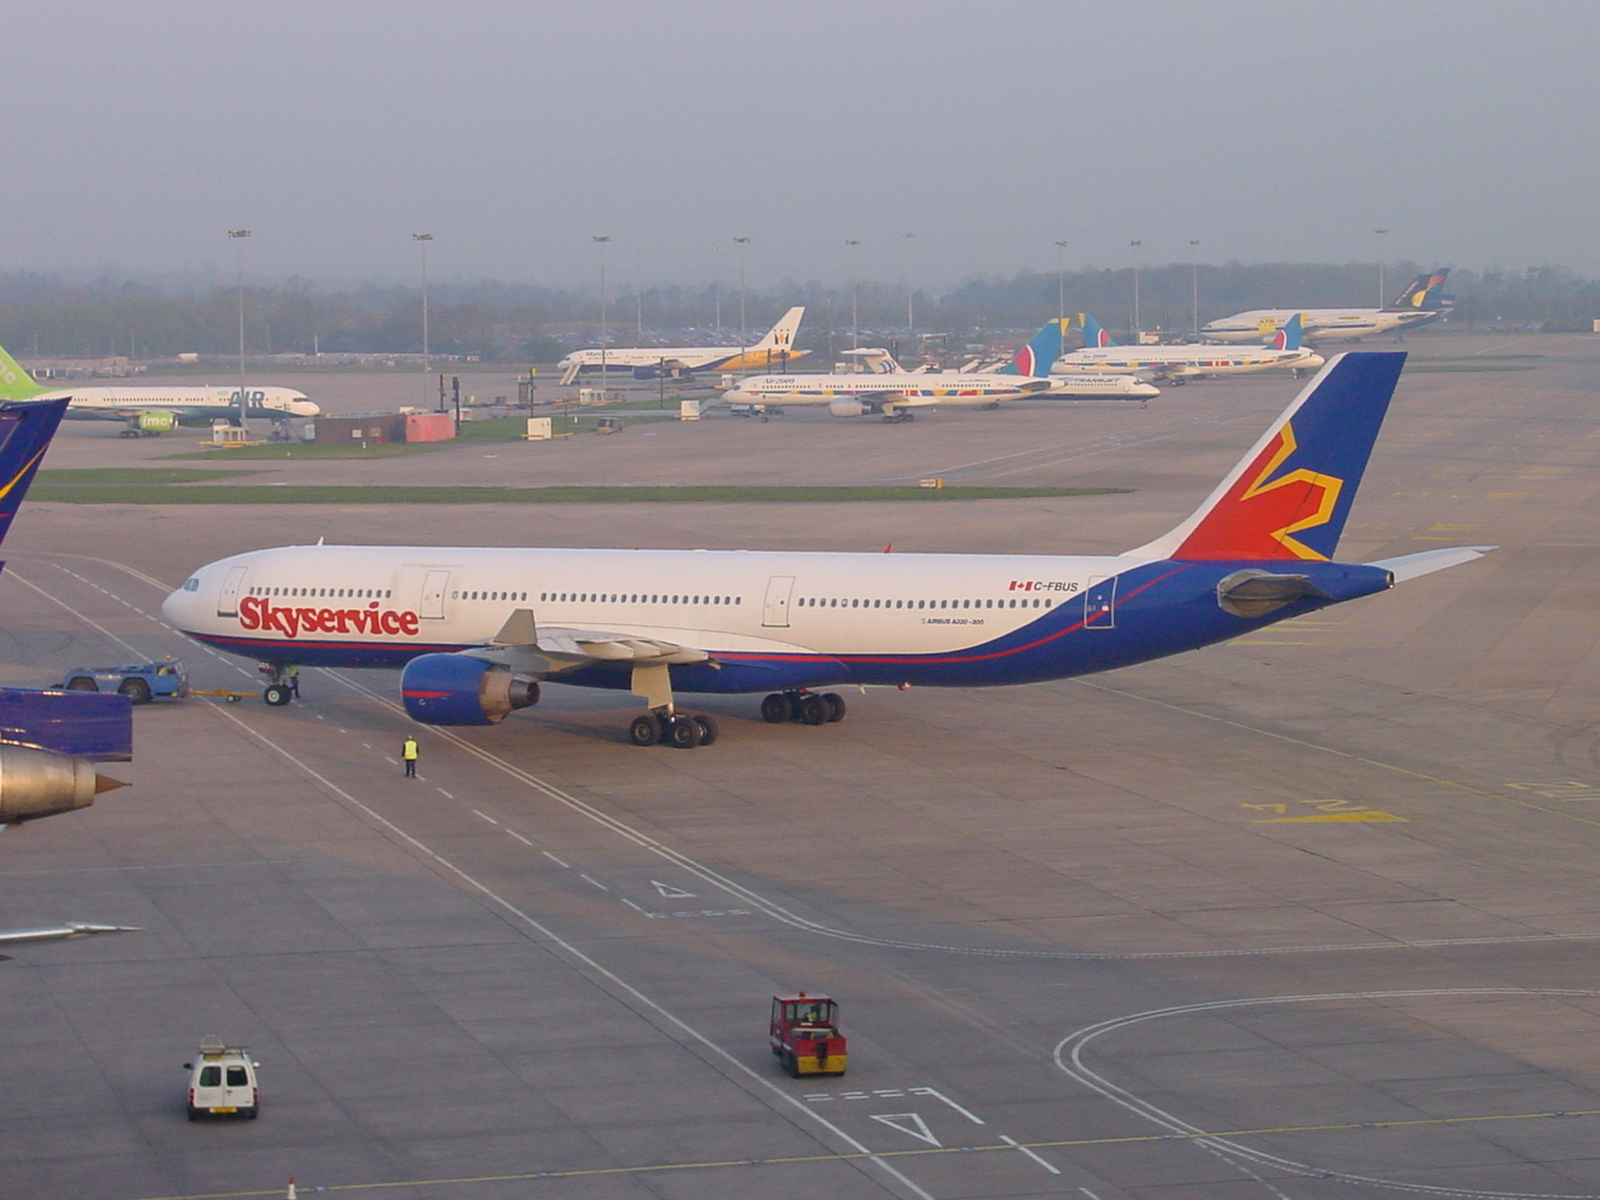 An interesting photo taken just 17 years ago (5th April 2002) looking towards the T2 aprons from the top of the T1 Multi Story Car park. How things change…not a single one of the airlines pictured (7) are still flying today! Many thanks to Steve Ashworth for sharing.